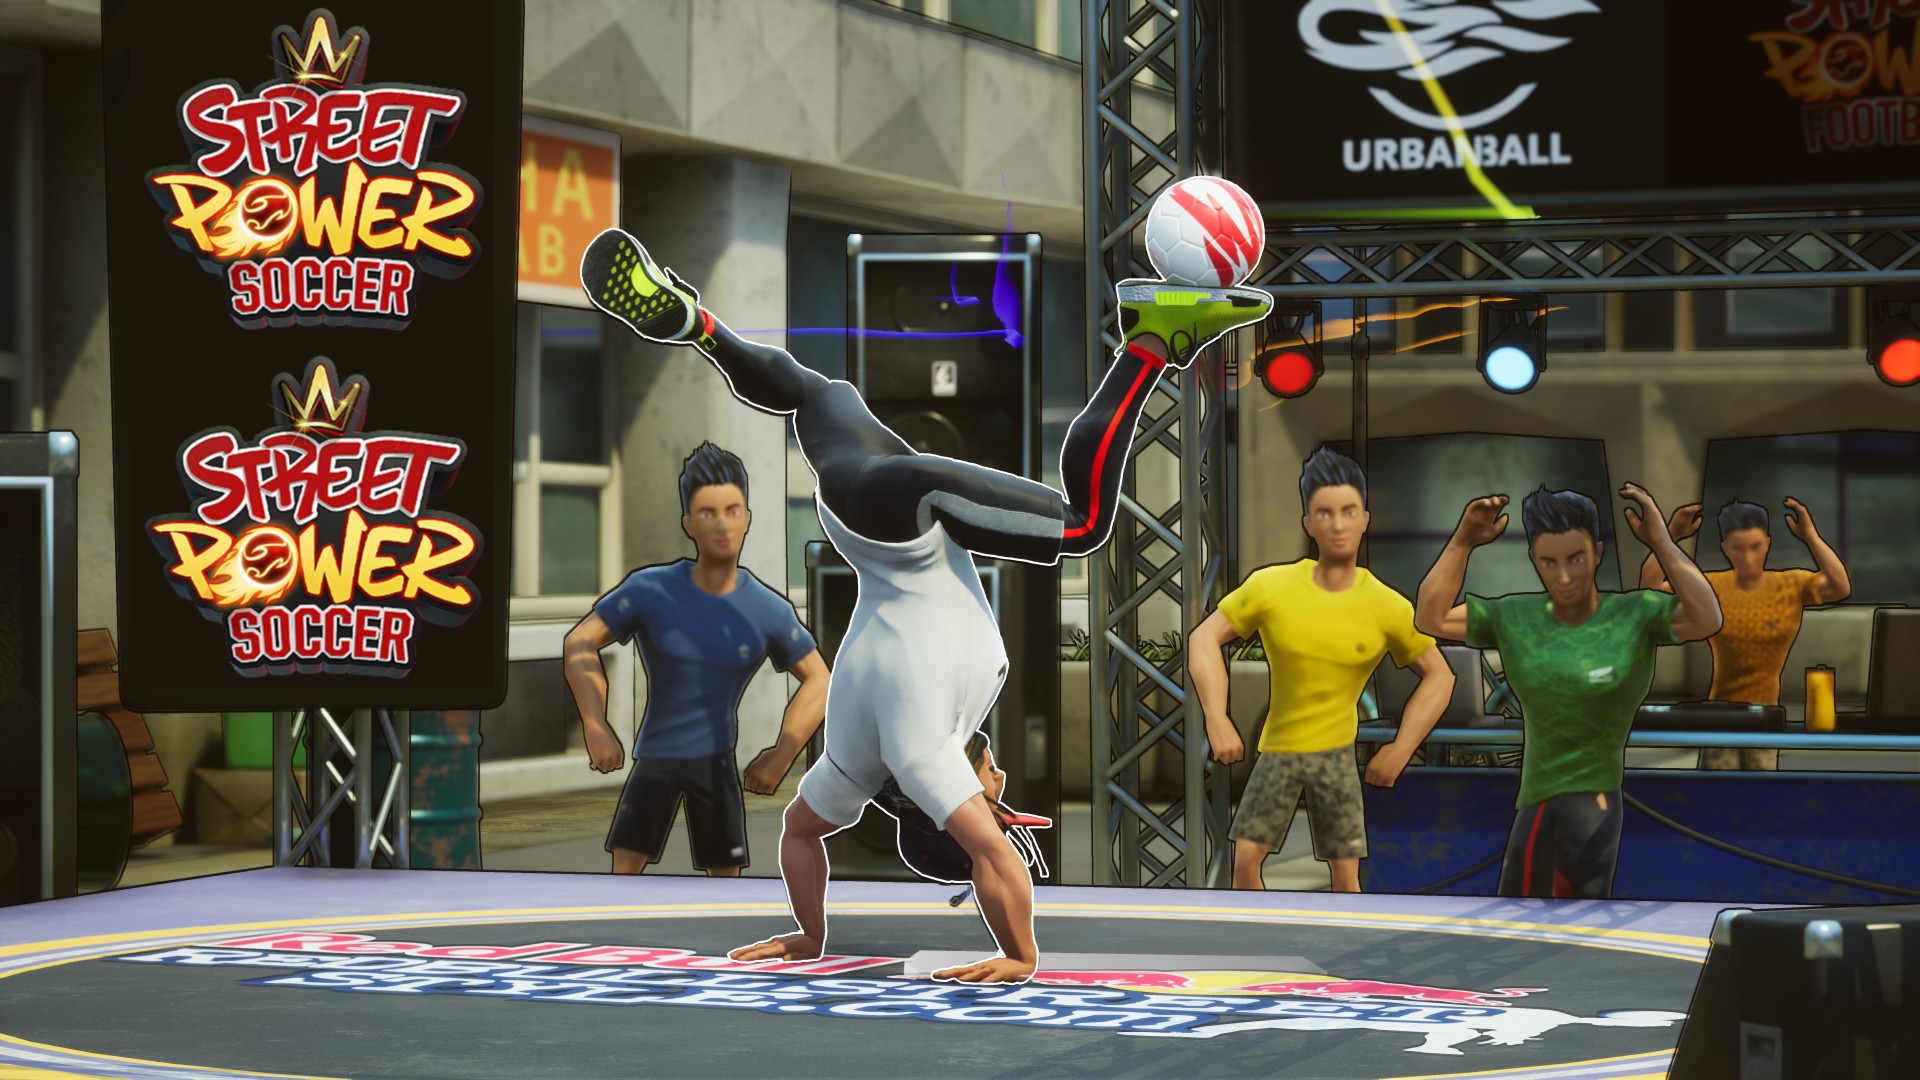 Street Power Soccer screenshot 28257